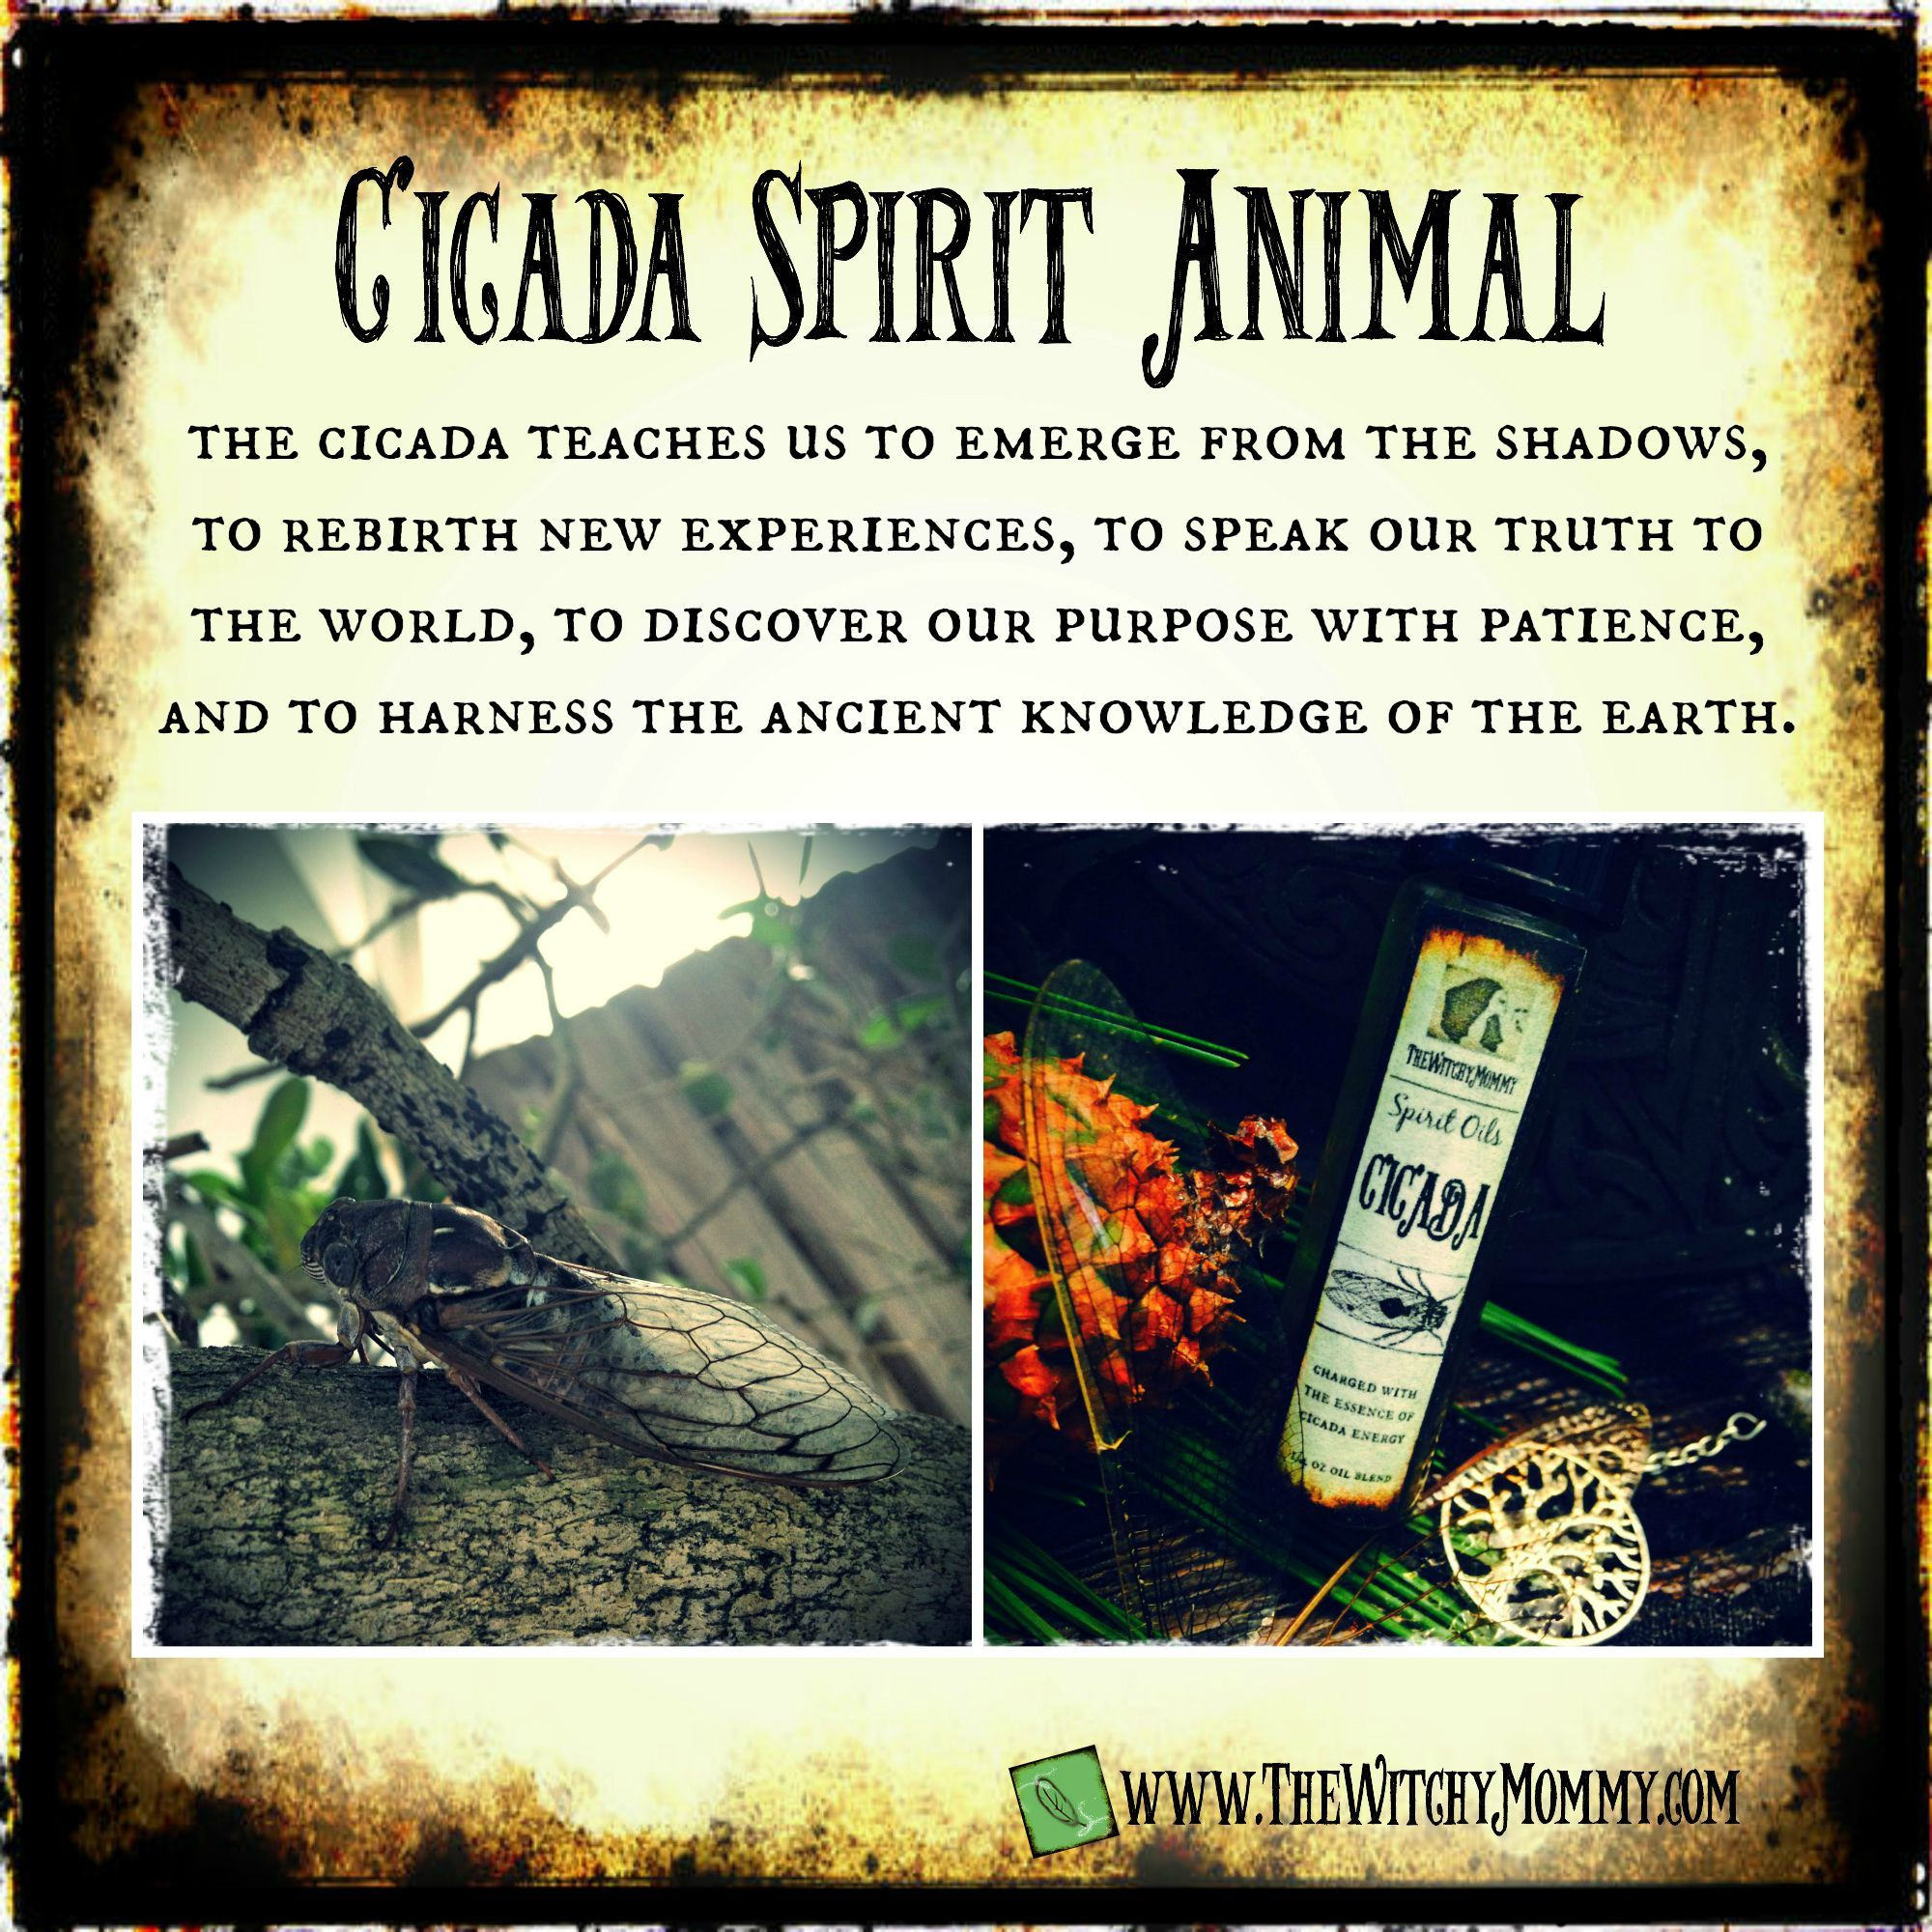 Pin by The Witchy Mommy on ✭ Spirit ANIMAL Magick